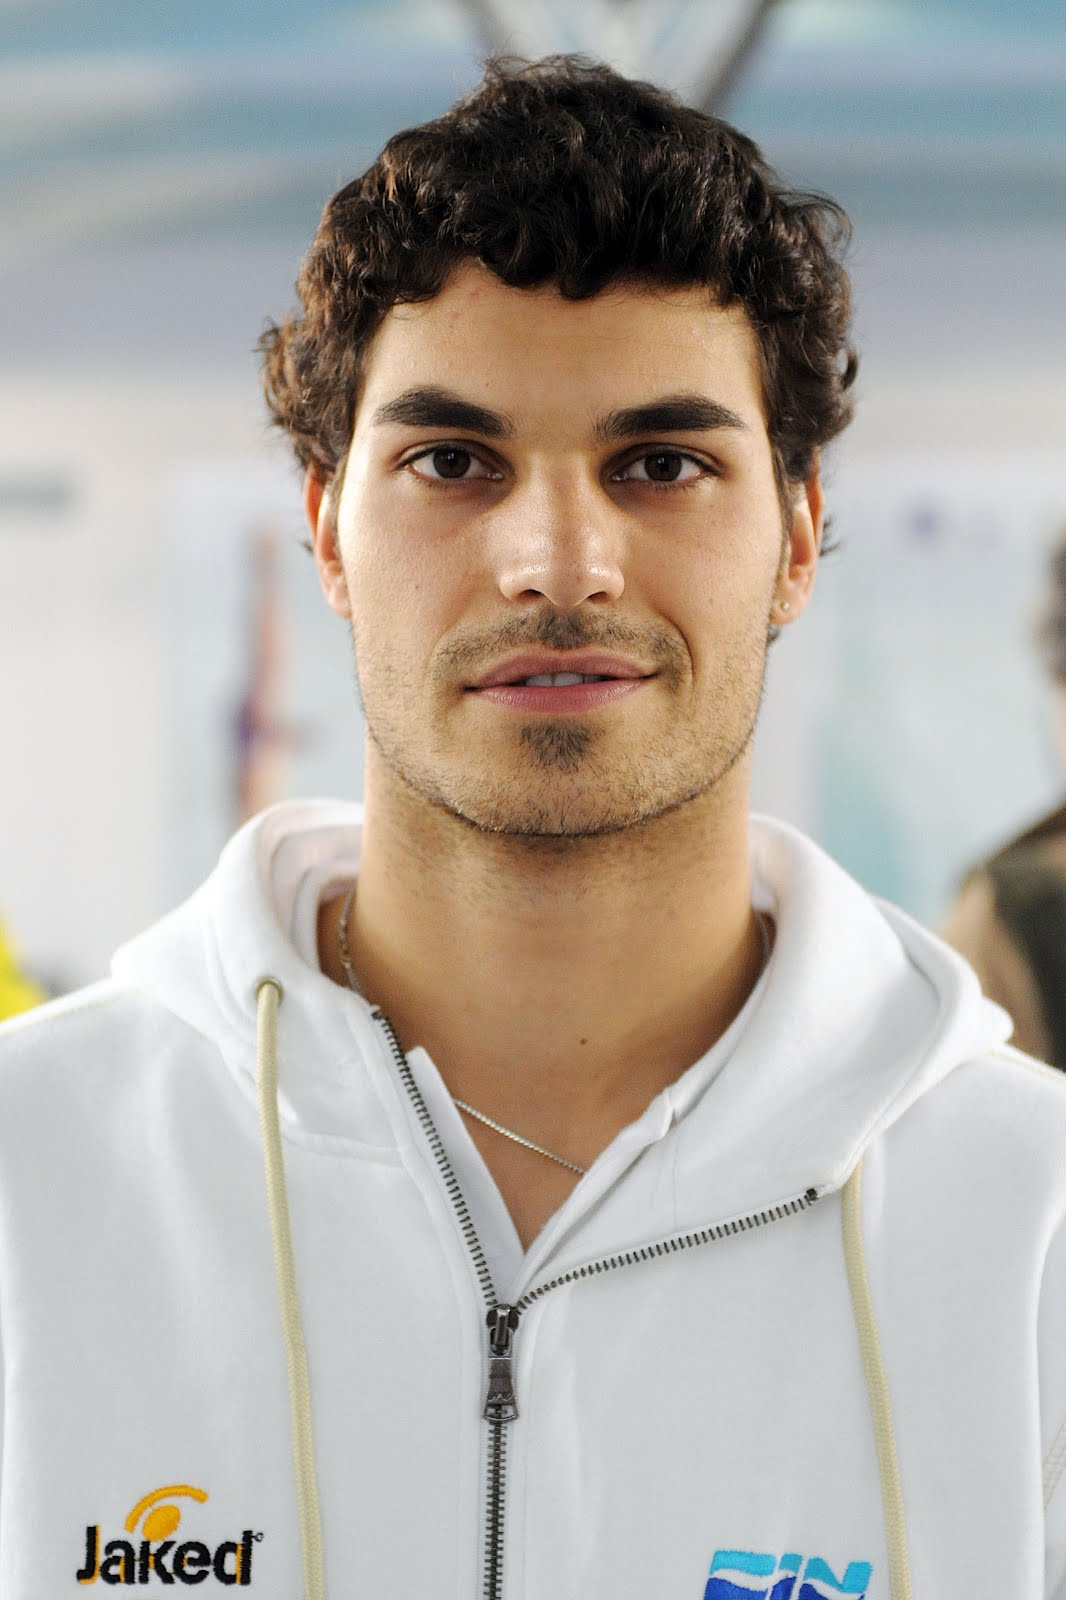 Italian Hotties Awesome edward's photos of the day: olympic hotties: italian diver